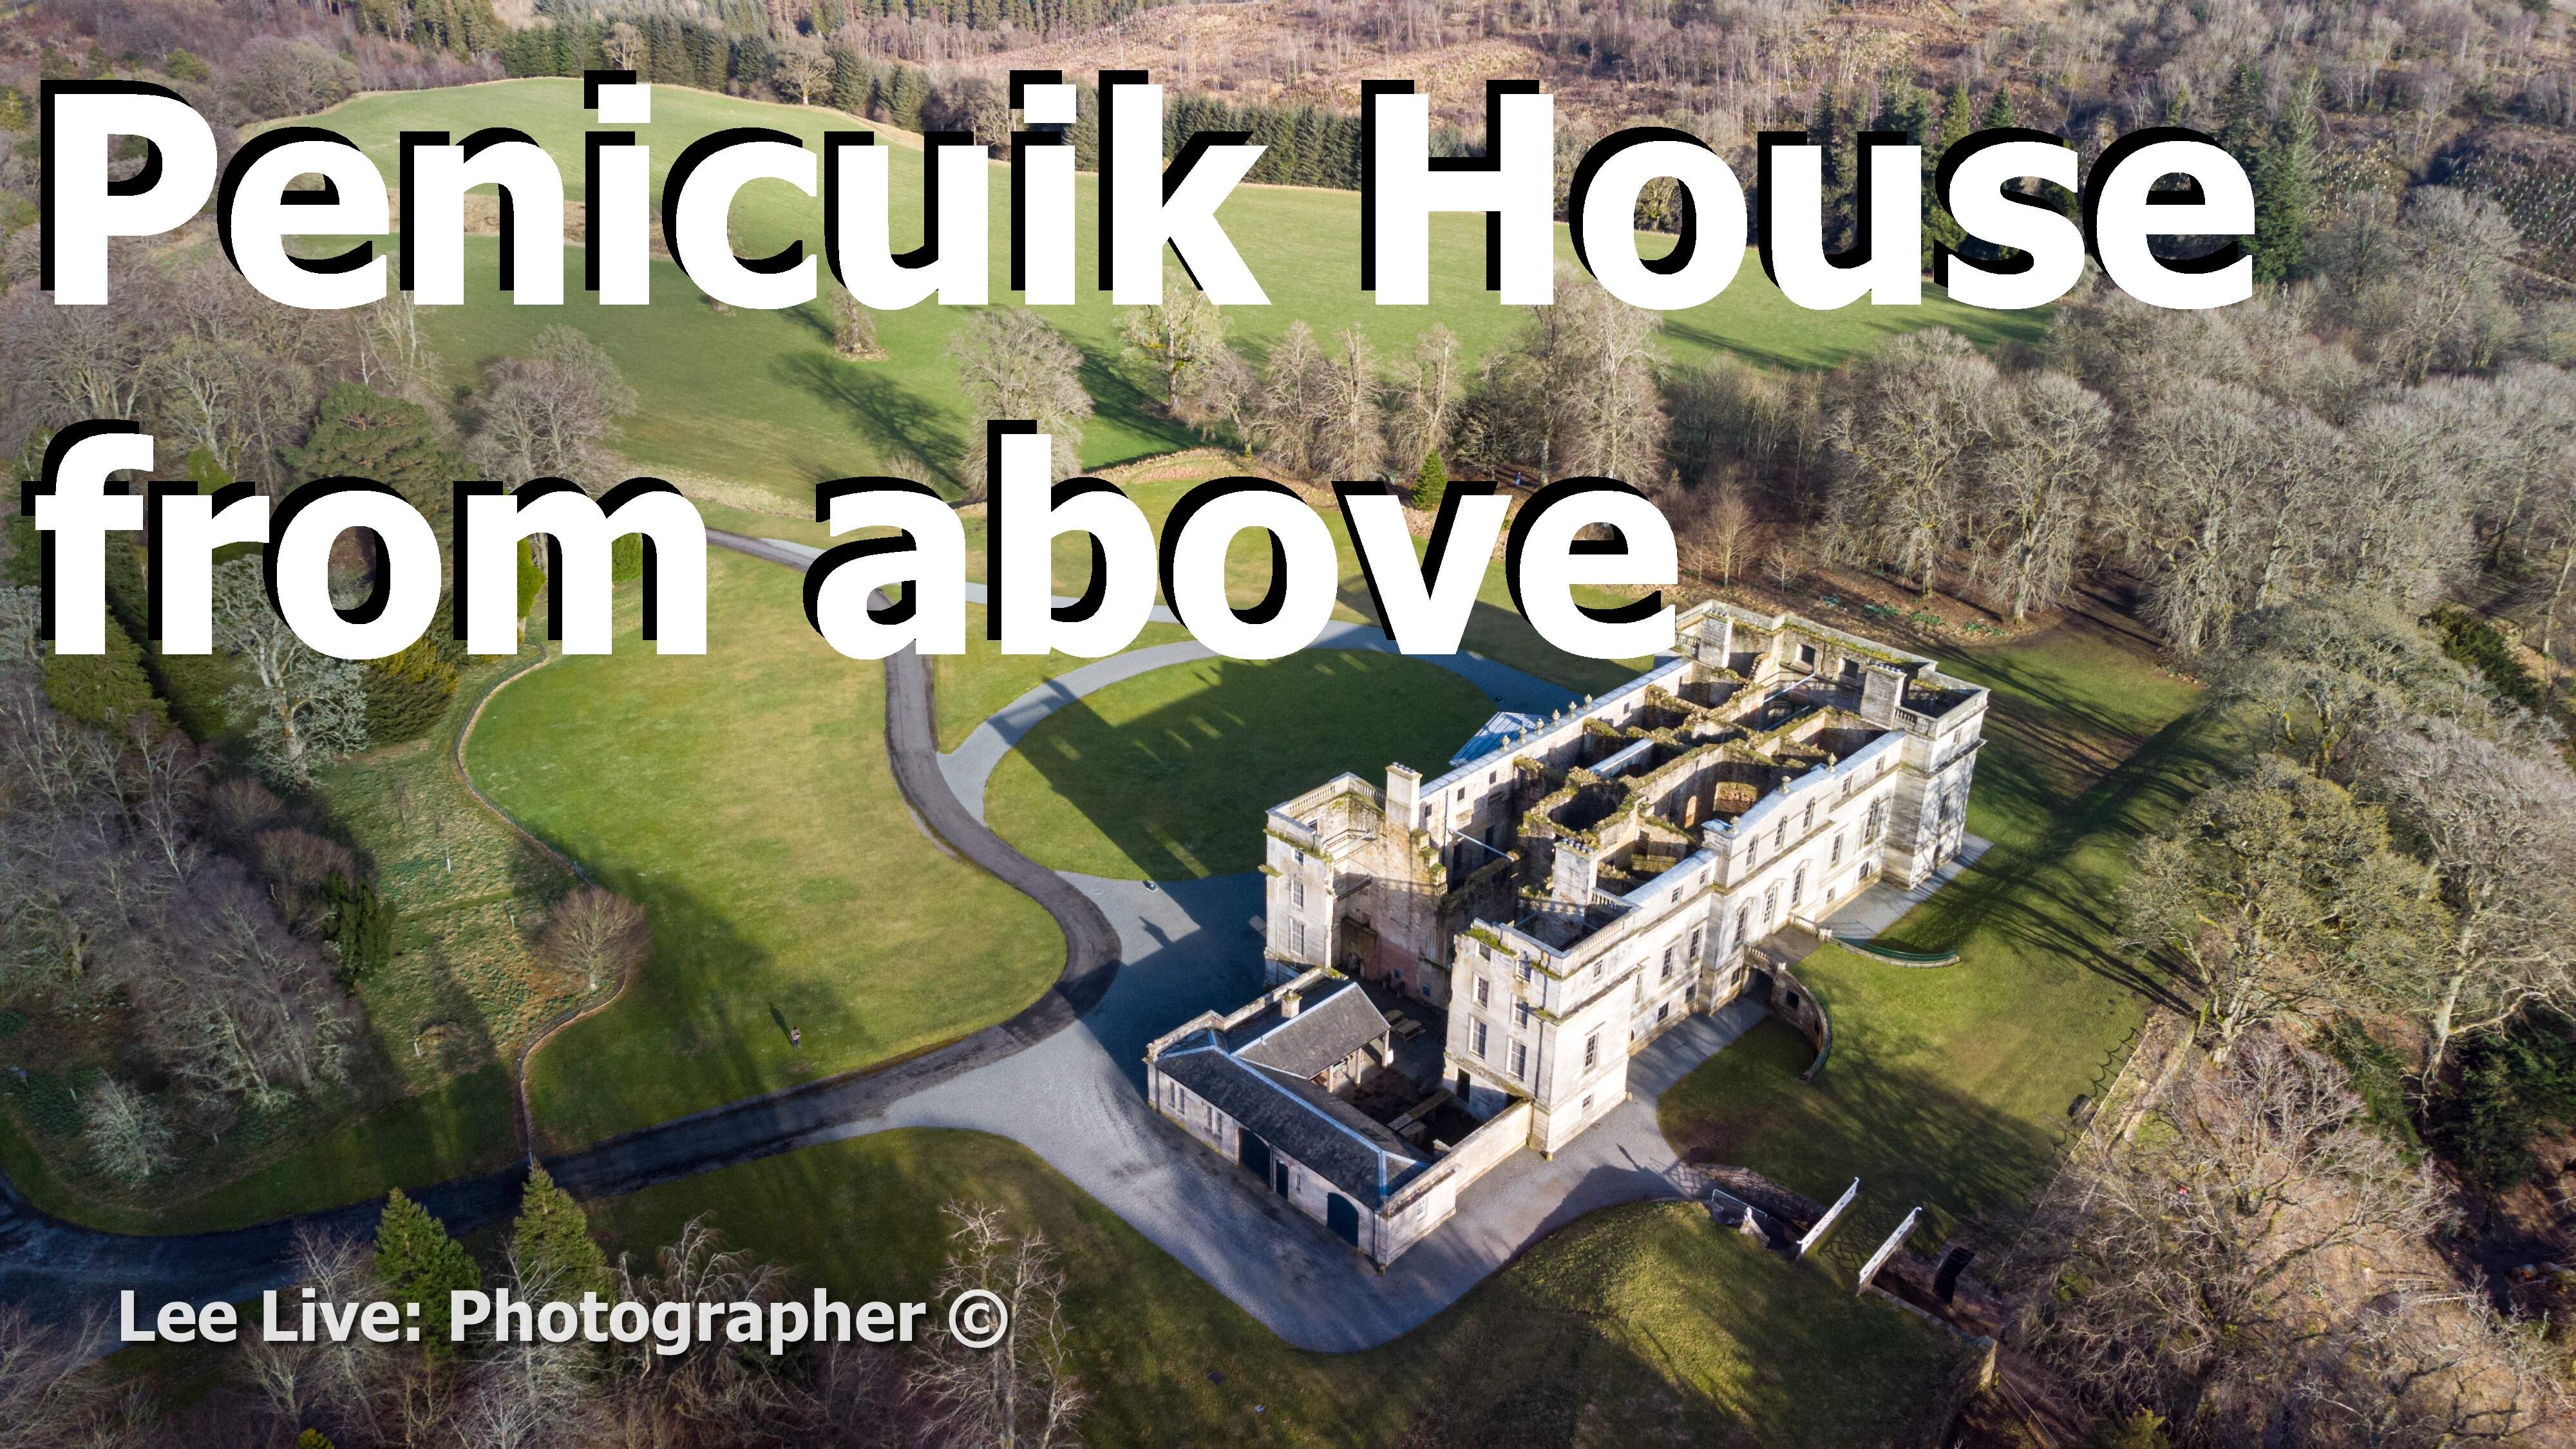 Aerial Drone Videography: Penicuik House